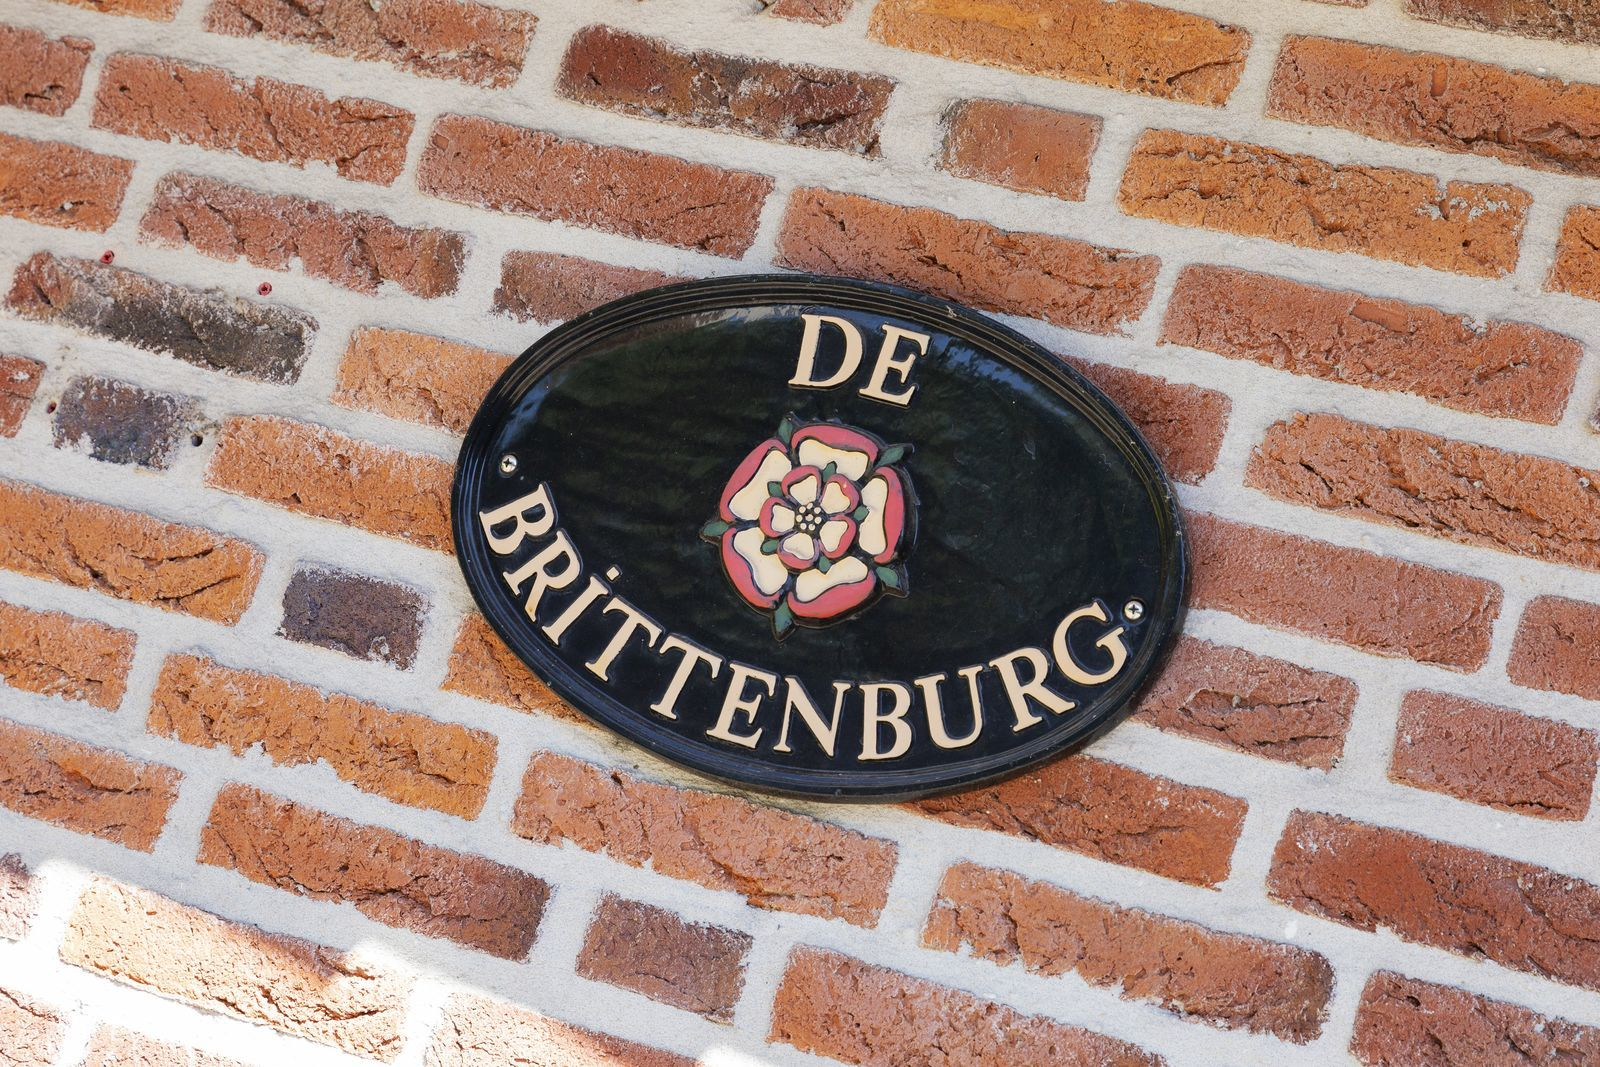 De Brittenburg for four people